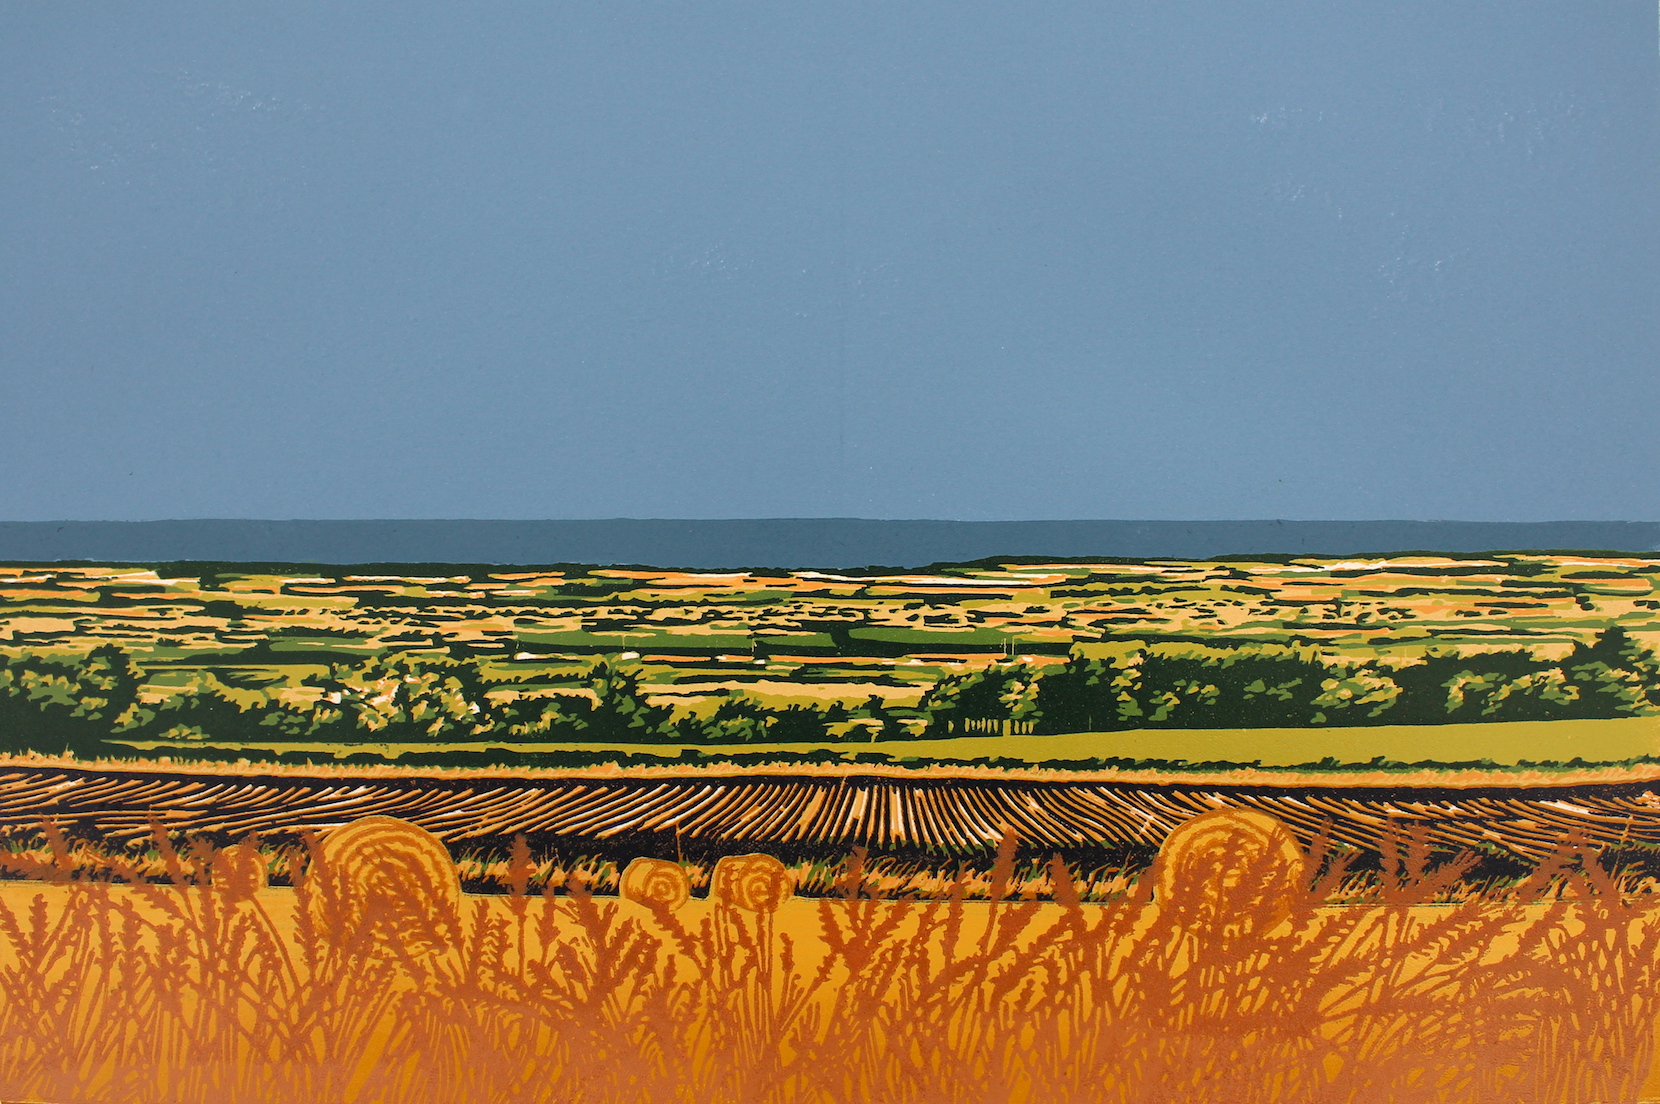 Summer Harvest  reduction  linocut   27 x 41cm image size  £240 unframed